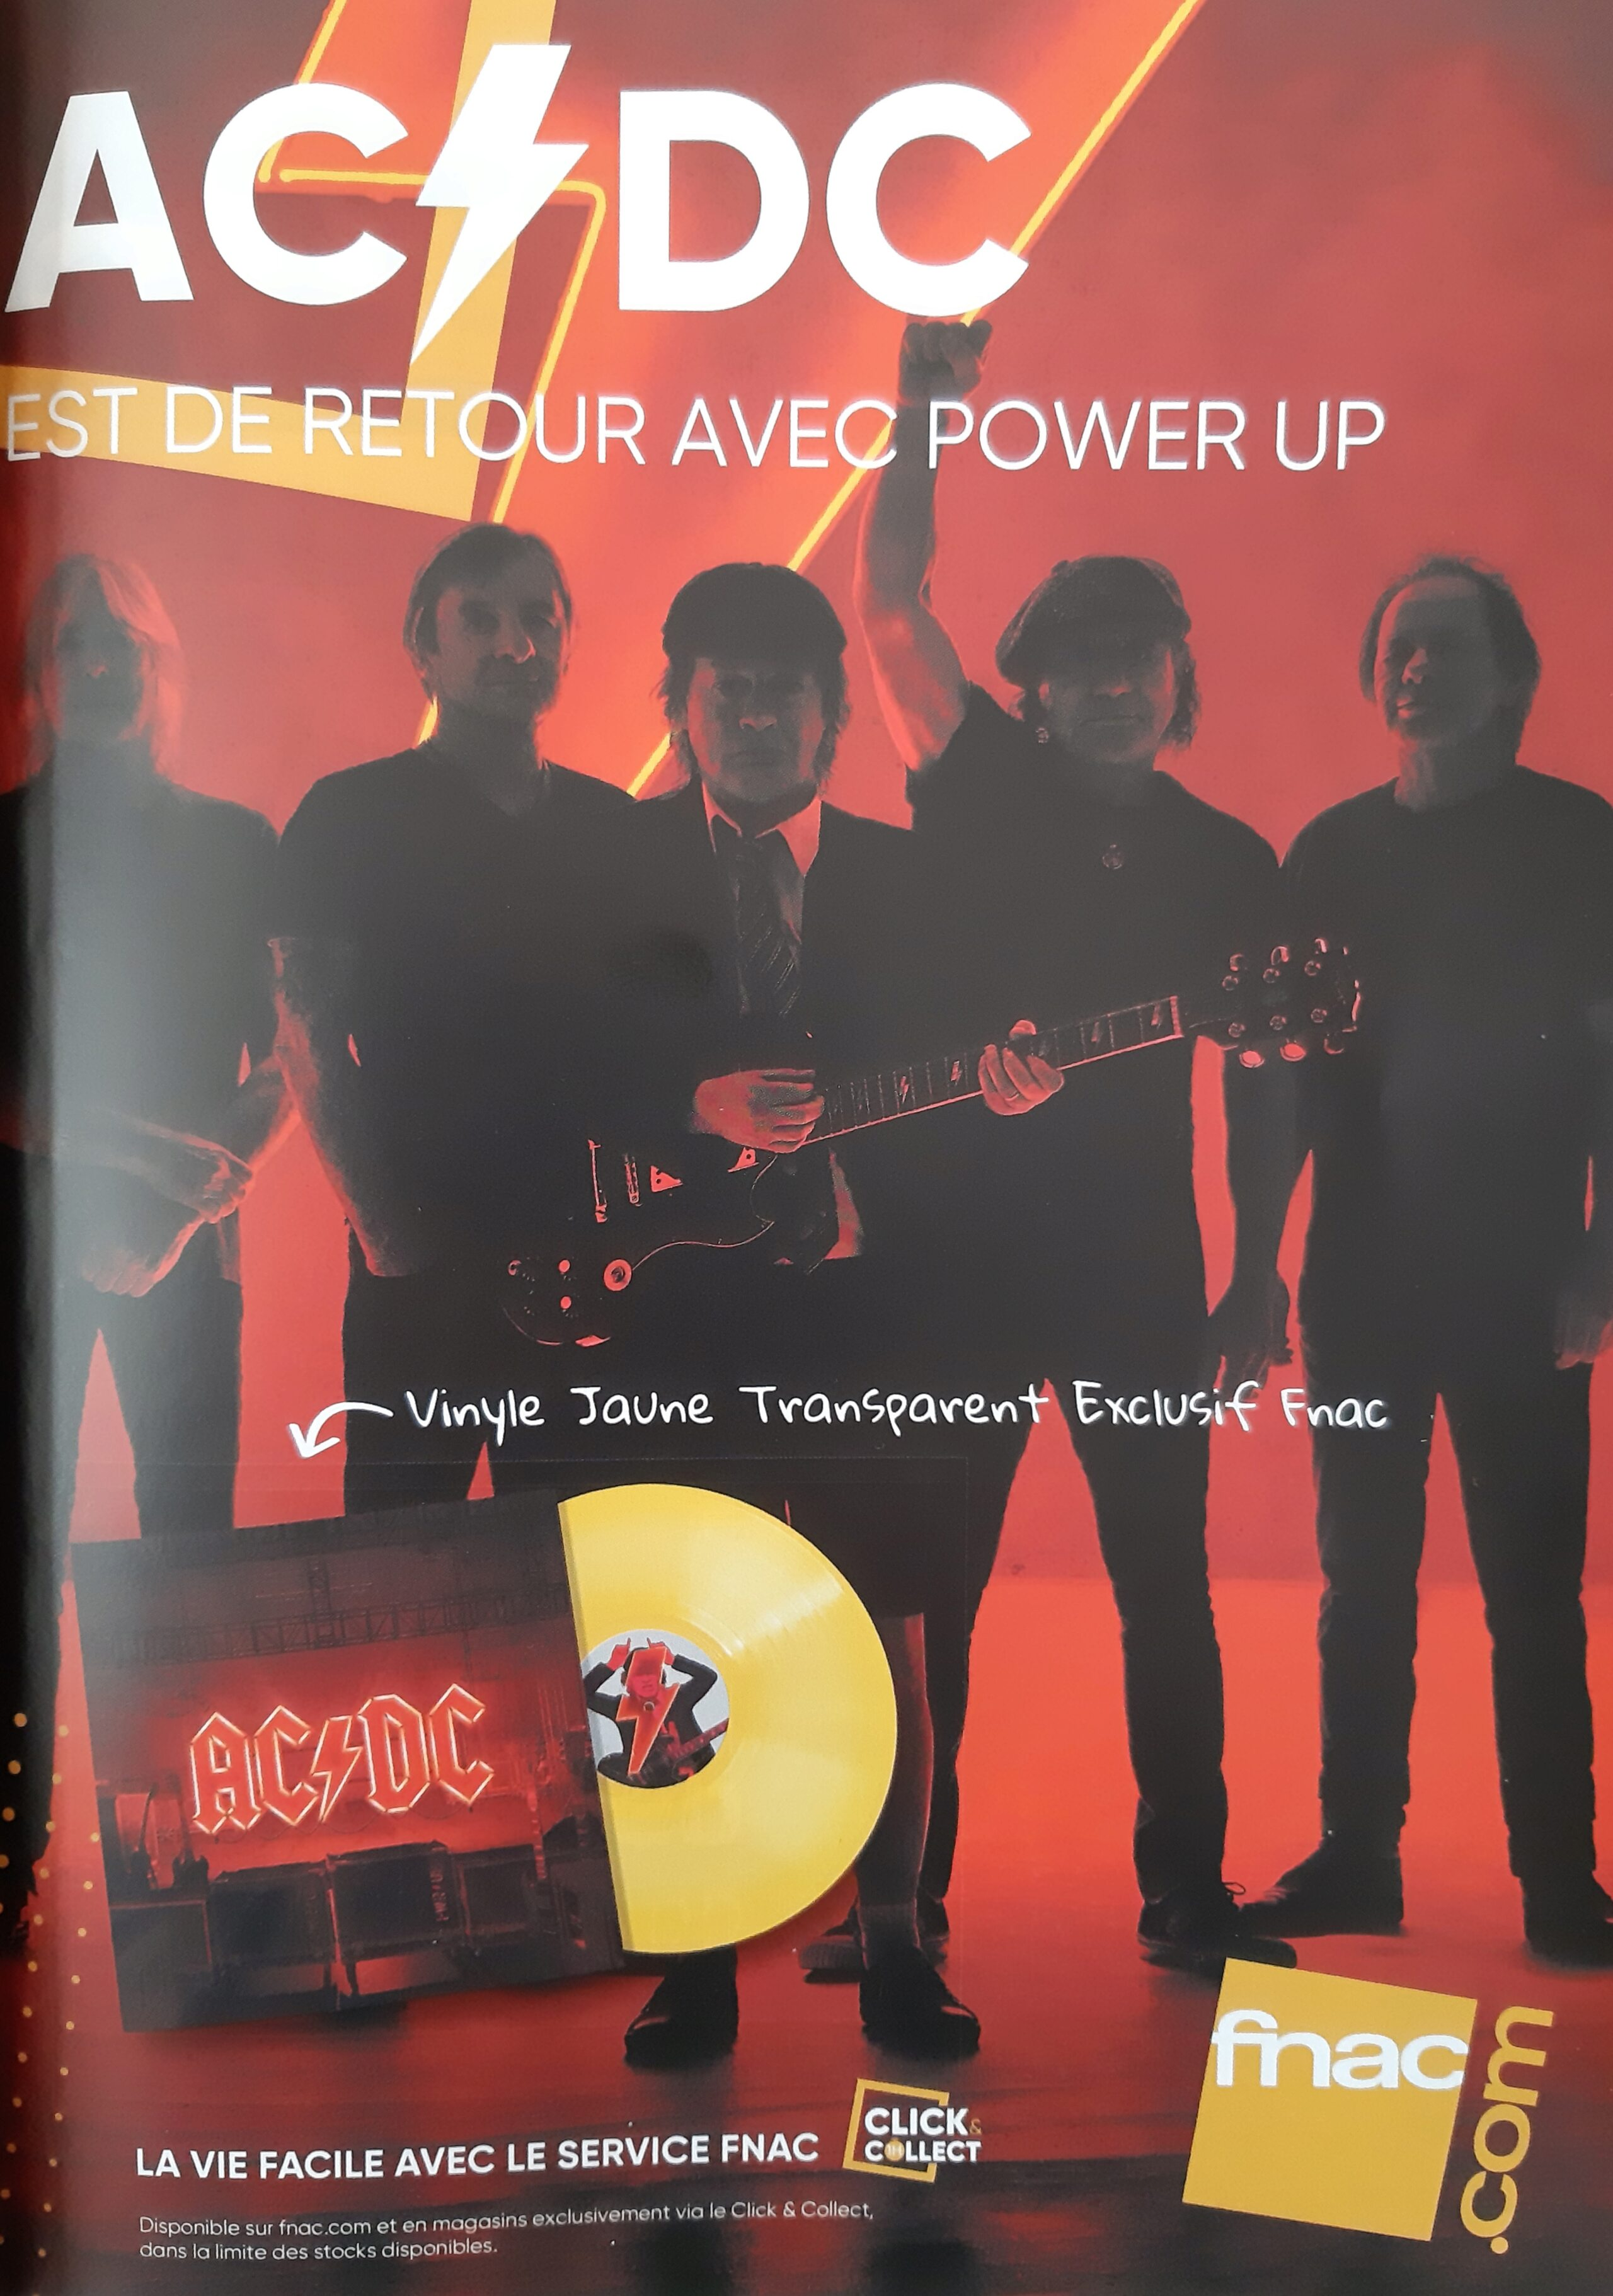 ACDC Power Up (2020) Hard-Rock Australie - Page 4 20201226